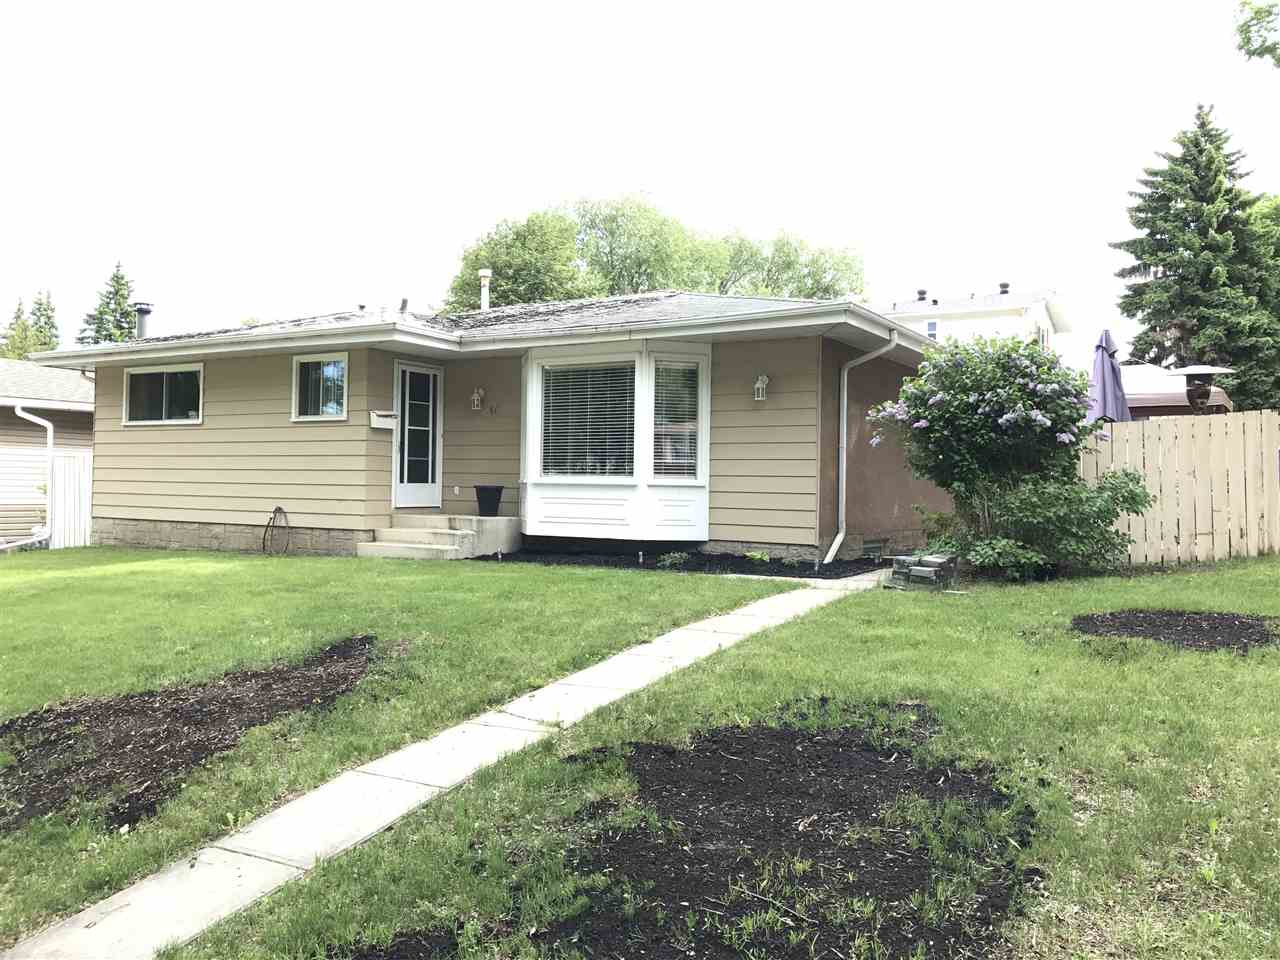 Main Photo: 14 Broadview Crescent: St. Albert House for sale : MLS(r) # E4067668